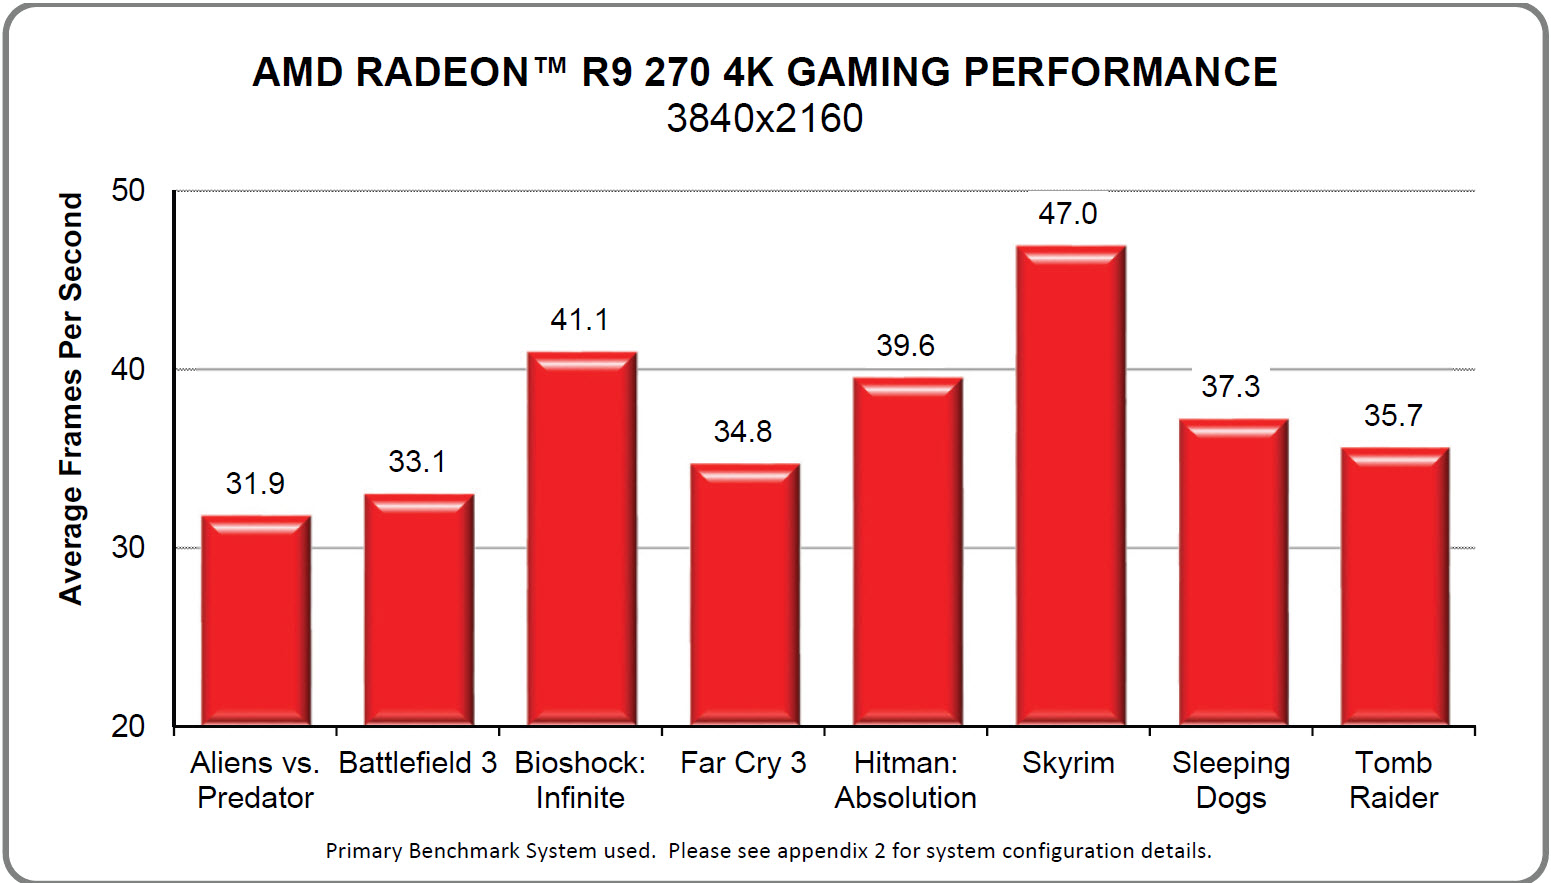 AMD Launches The Radeon R9 270 'Curacao Pro' Graphics Card - Heats